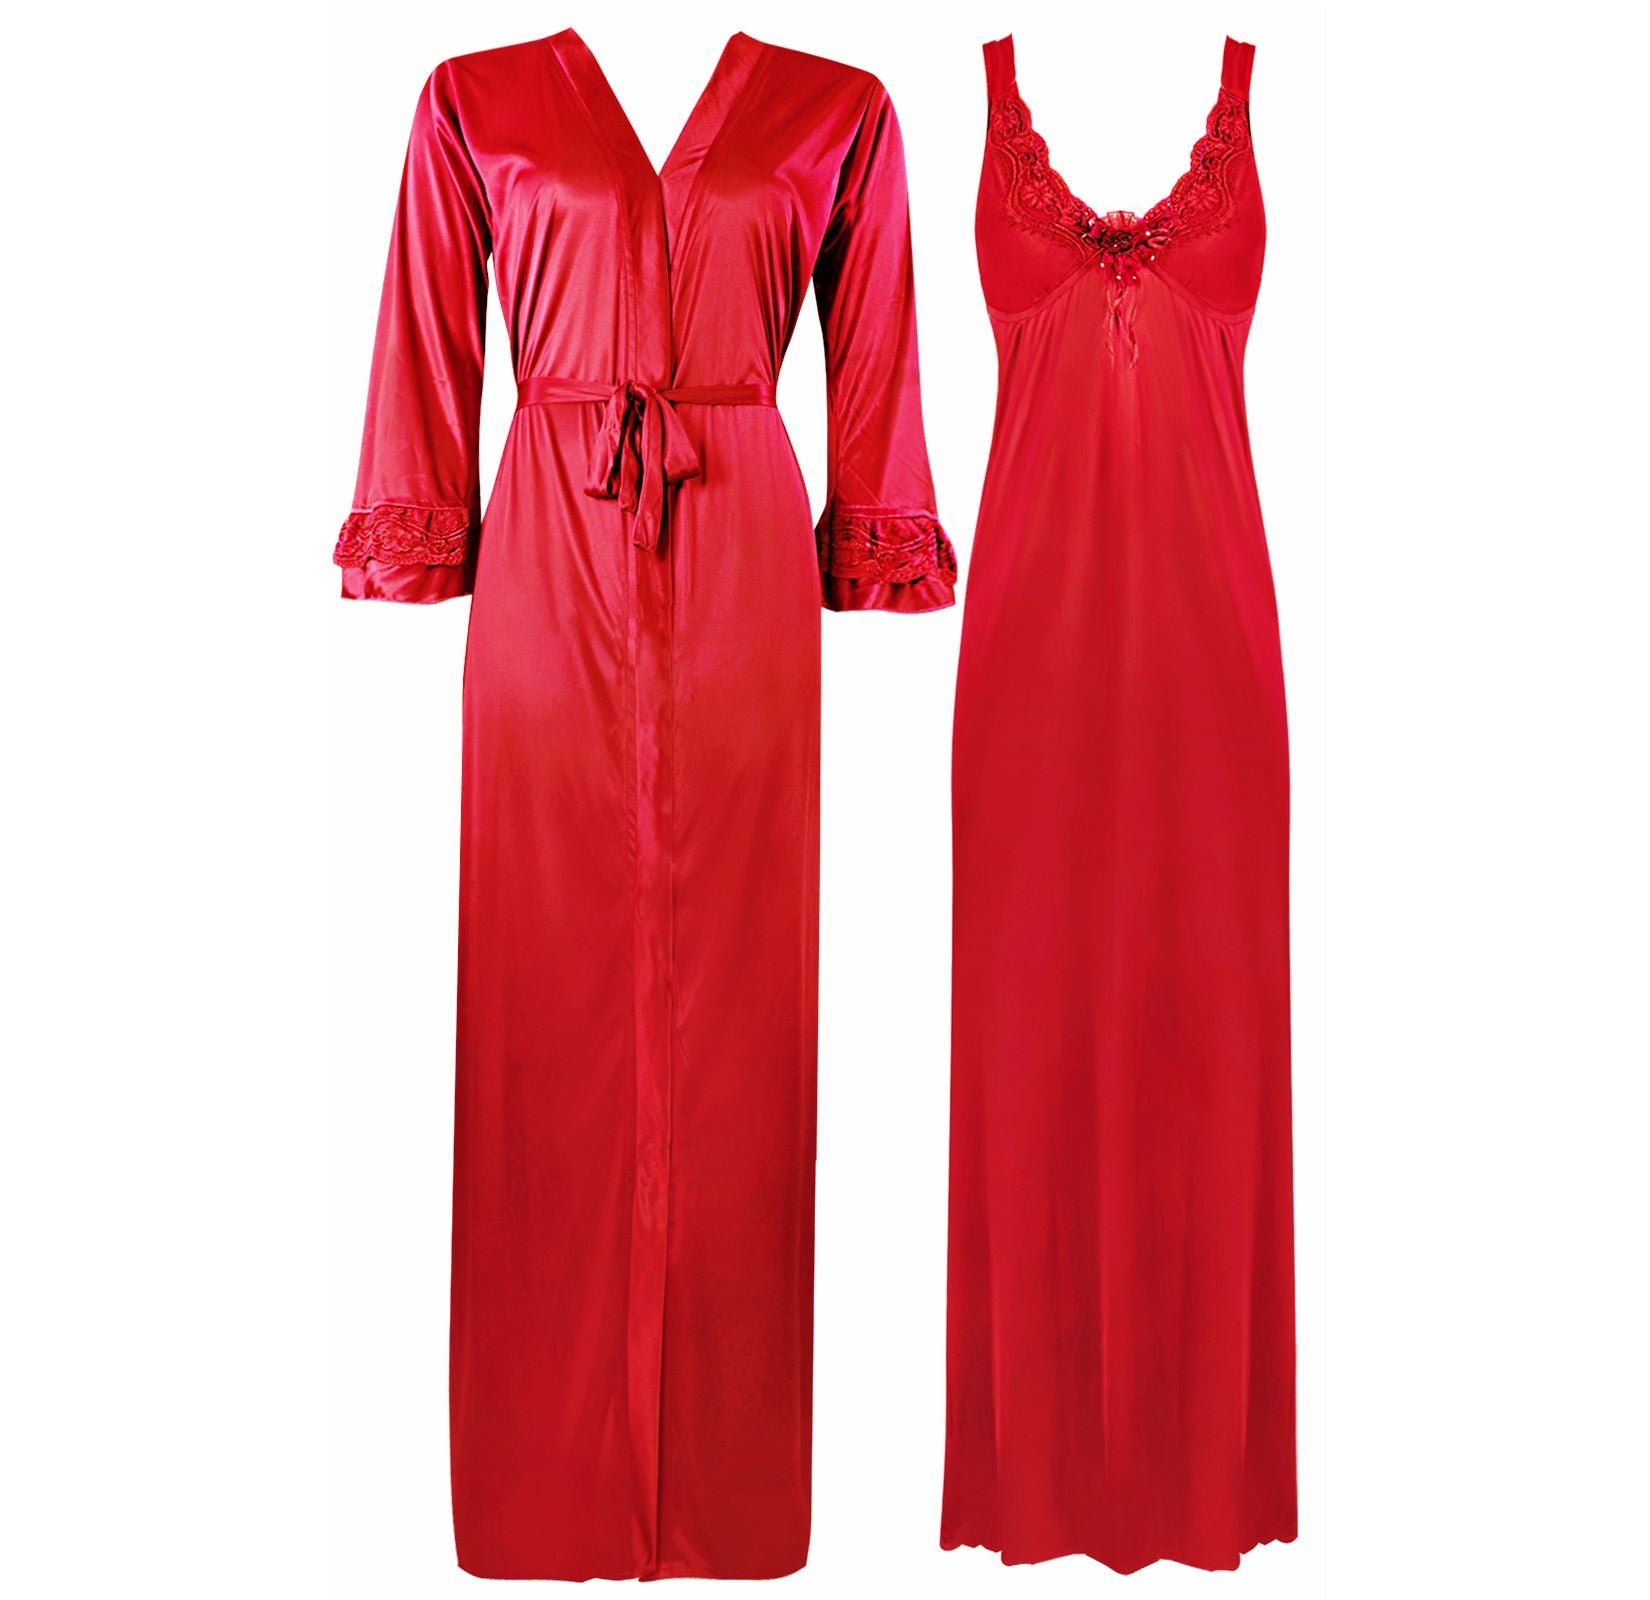 Color: Red 2 Piece Satin Nighty and Robe With Long Sleeve Dressing Gown Size: XL